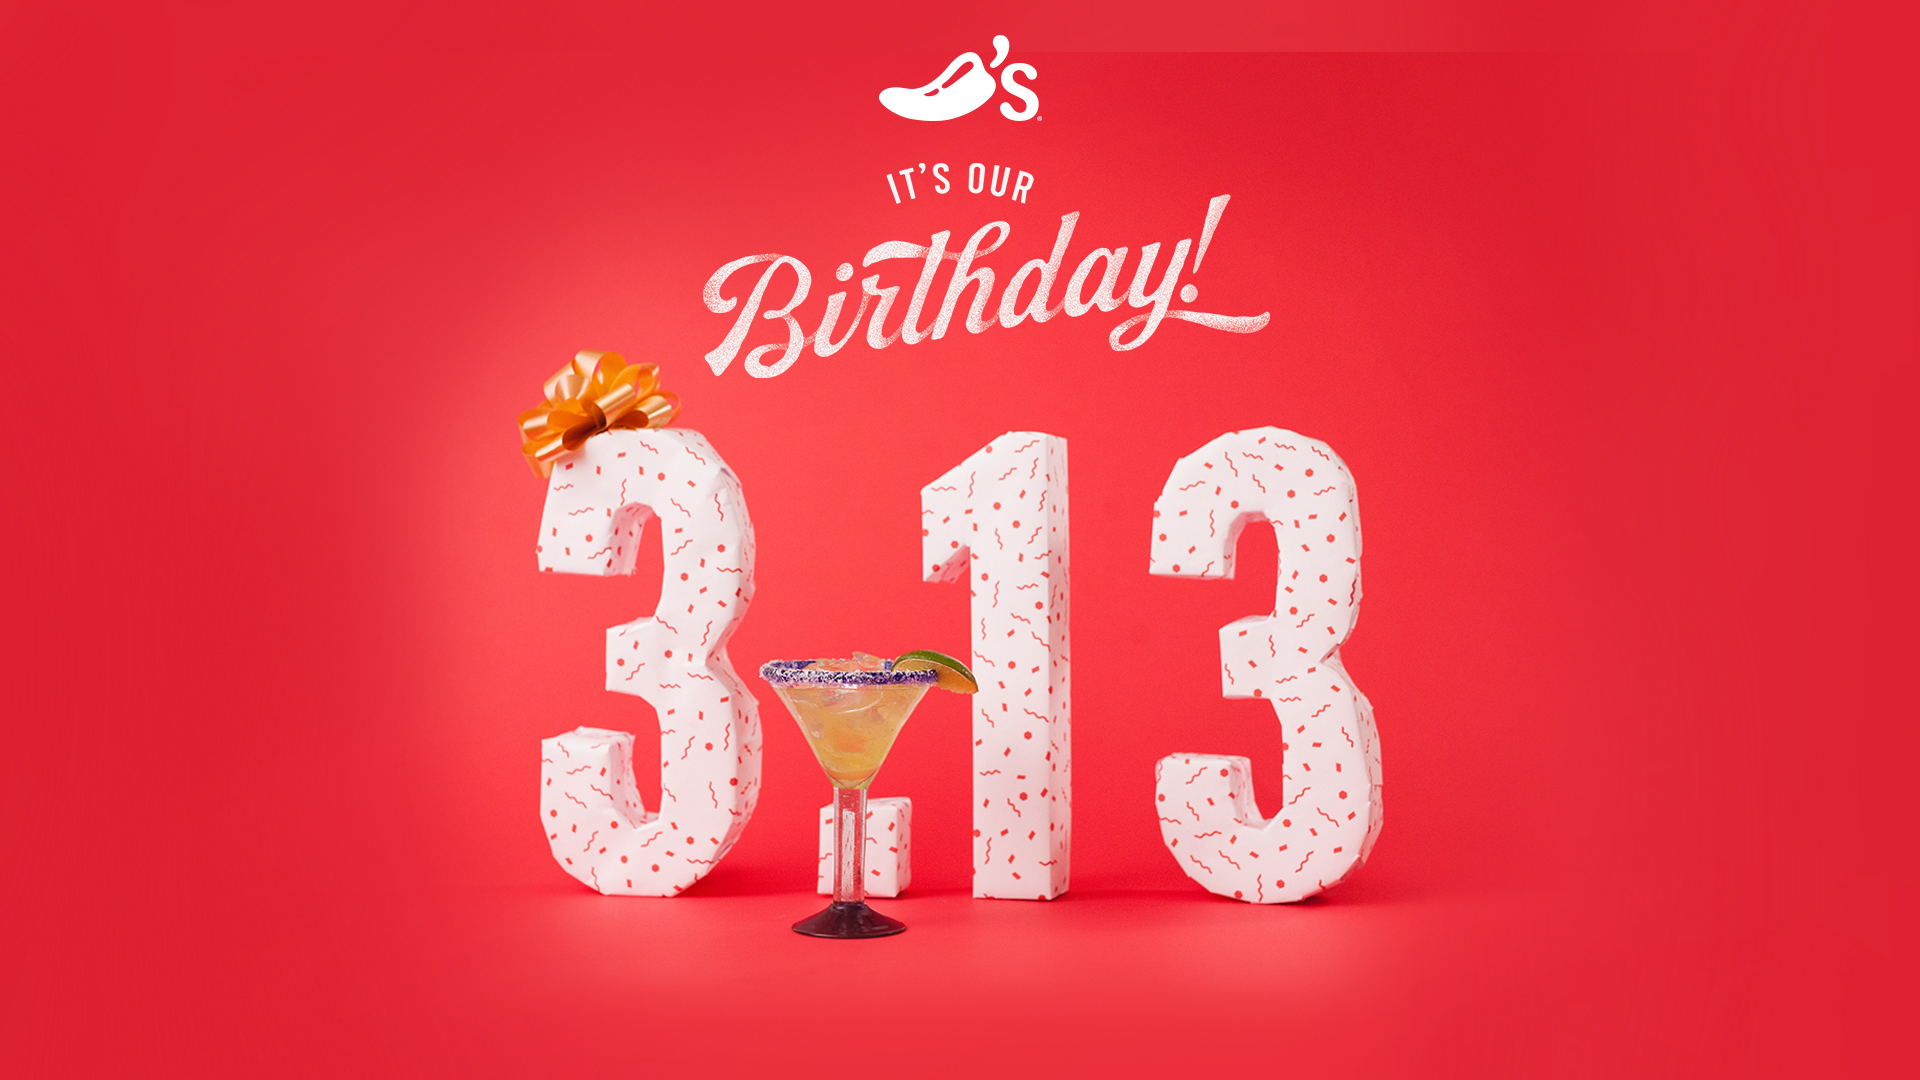 It's #ChilisBirthday on 3/13